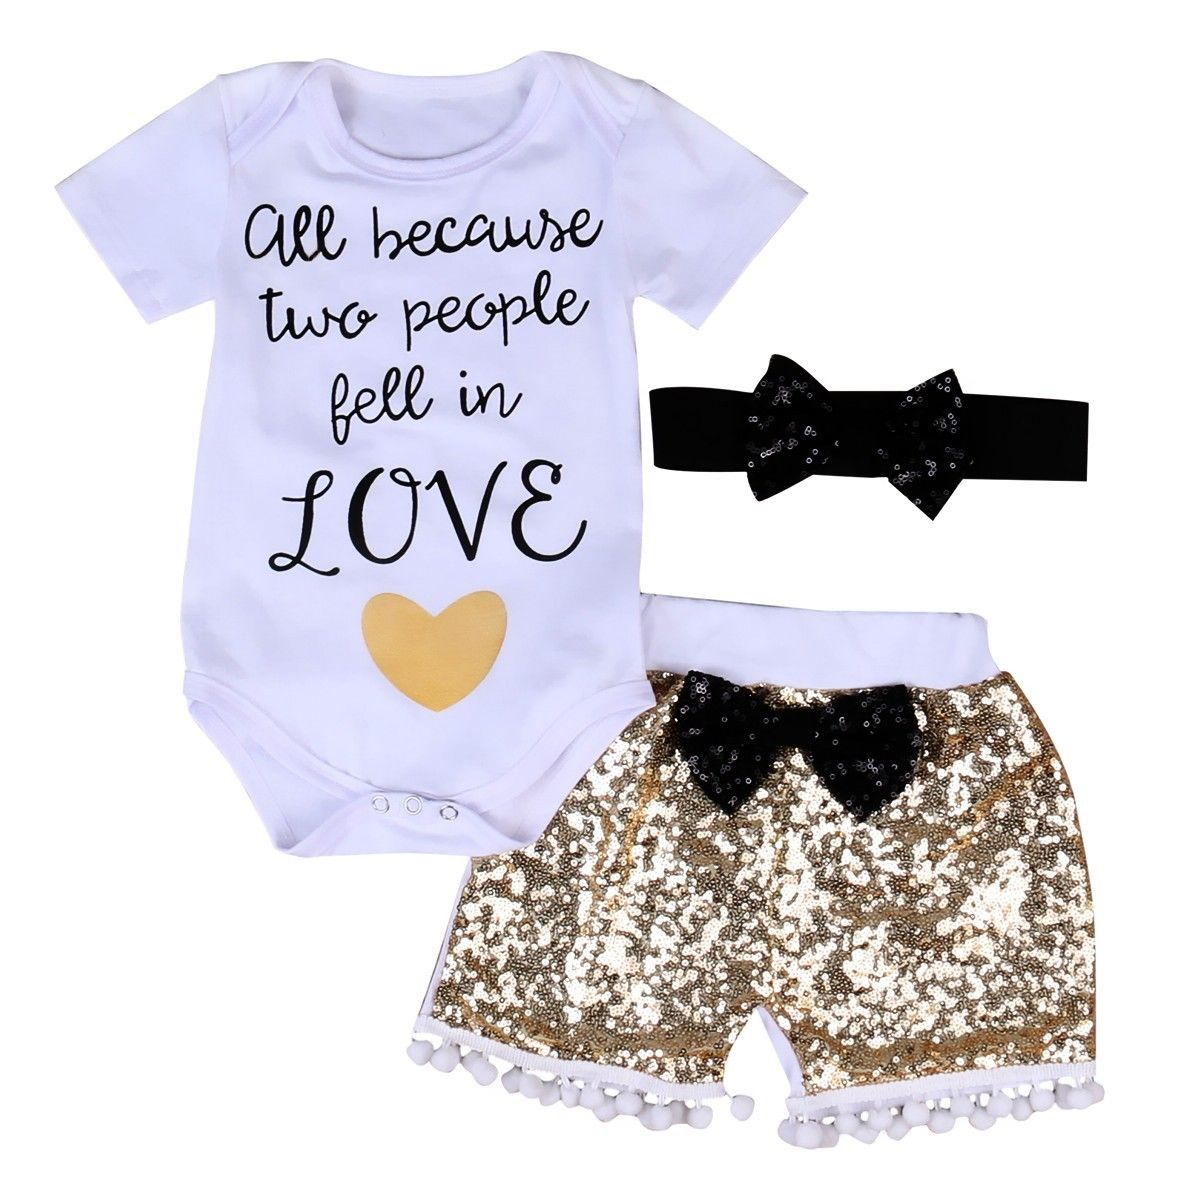 3Pcs Baby Girl Clothing Set Summer Short Sleeve Tops Bodysuits Sequin Pants Shorts Bow Outfits Set Clothes Baby Girls 3pcs set newborn infant baby boy girl clothes 2017 summer short sleeve leopard floral romper bodysuit headband shoes outfits